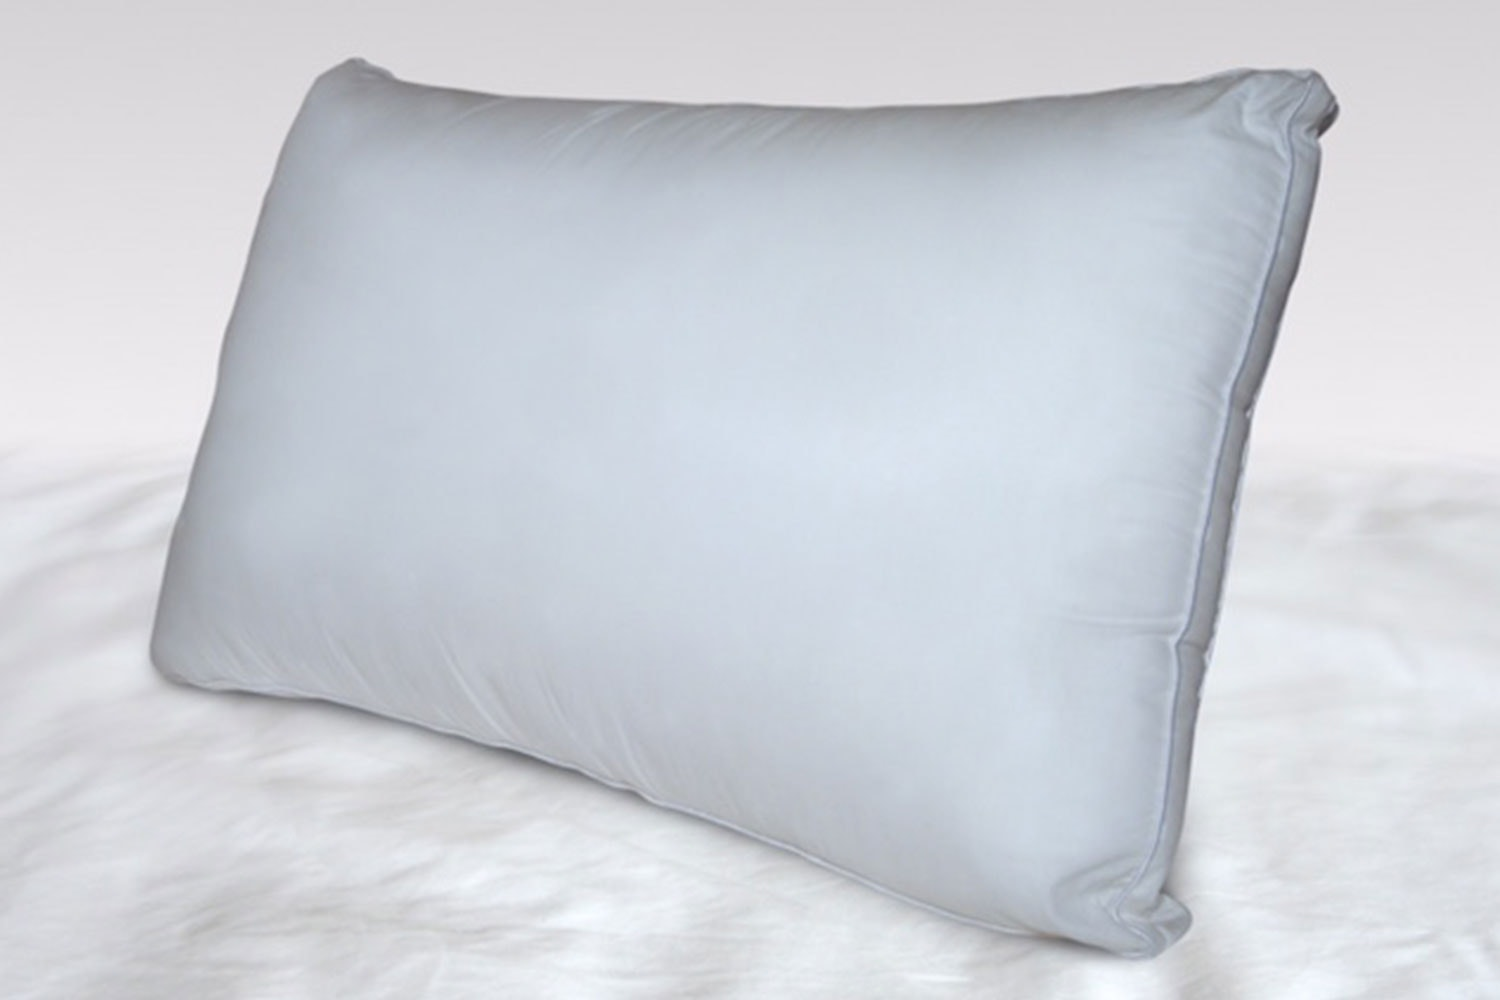 Low and Firm Gusseted Pillow by Herington